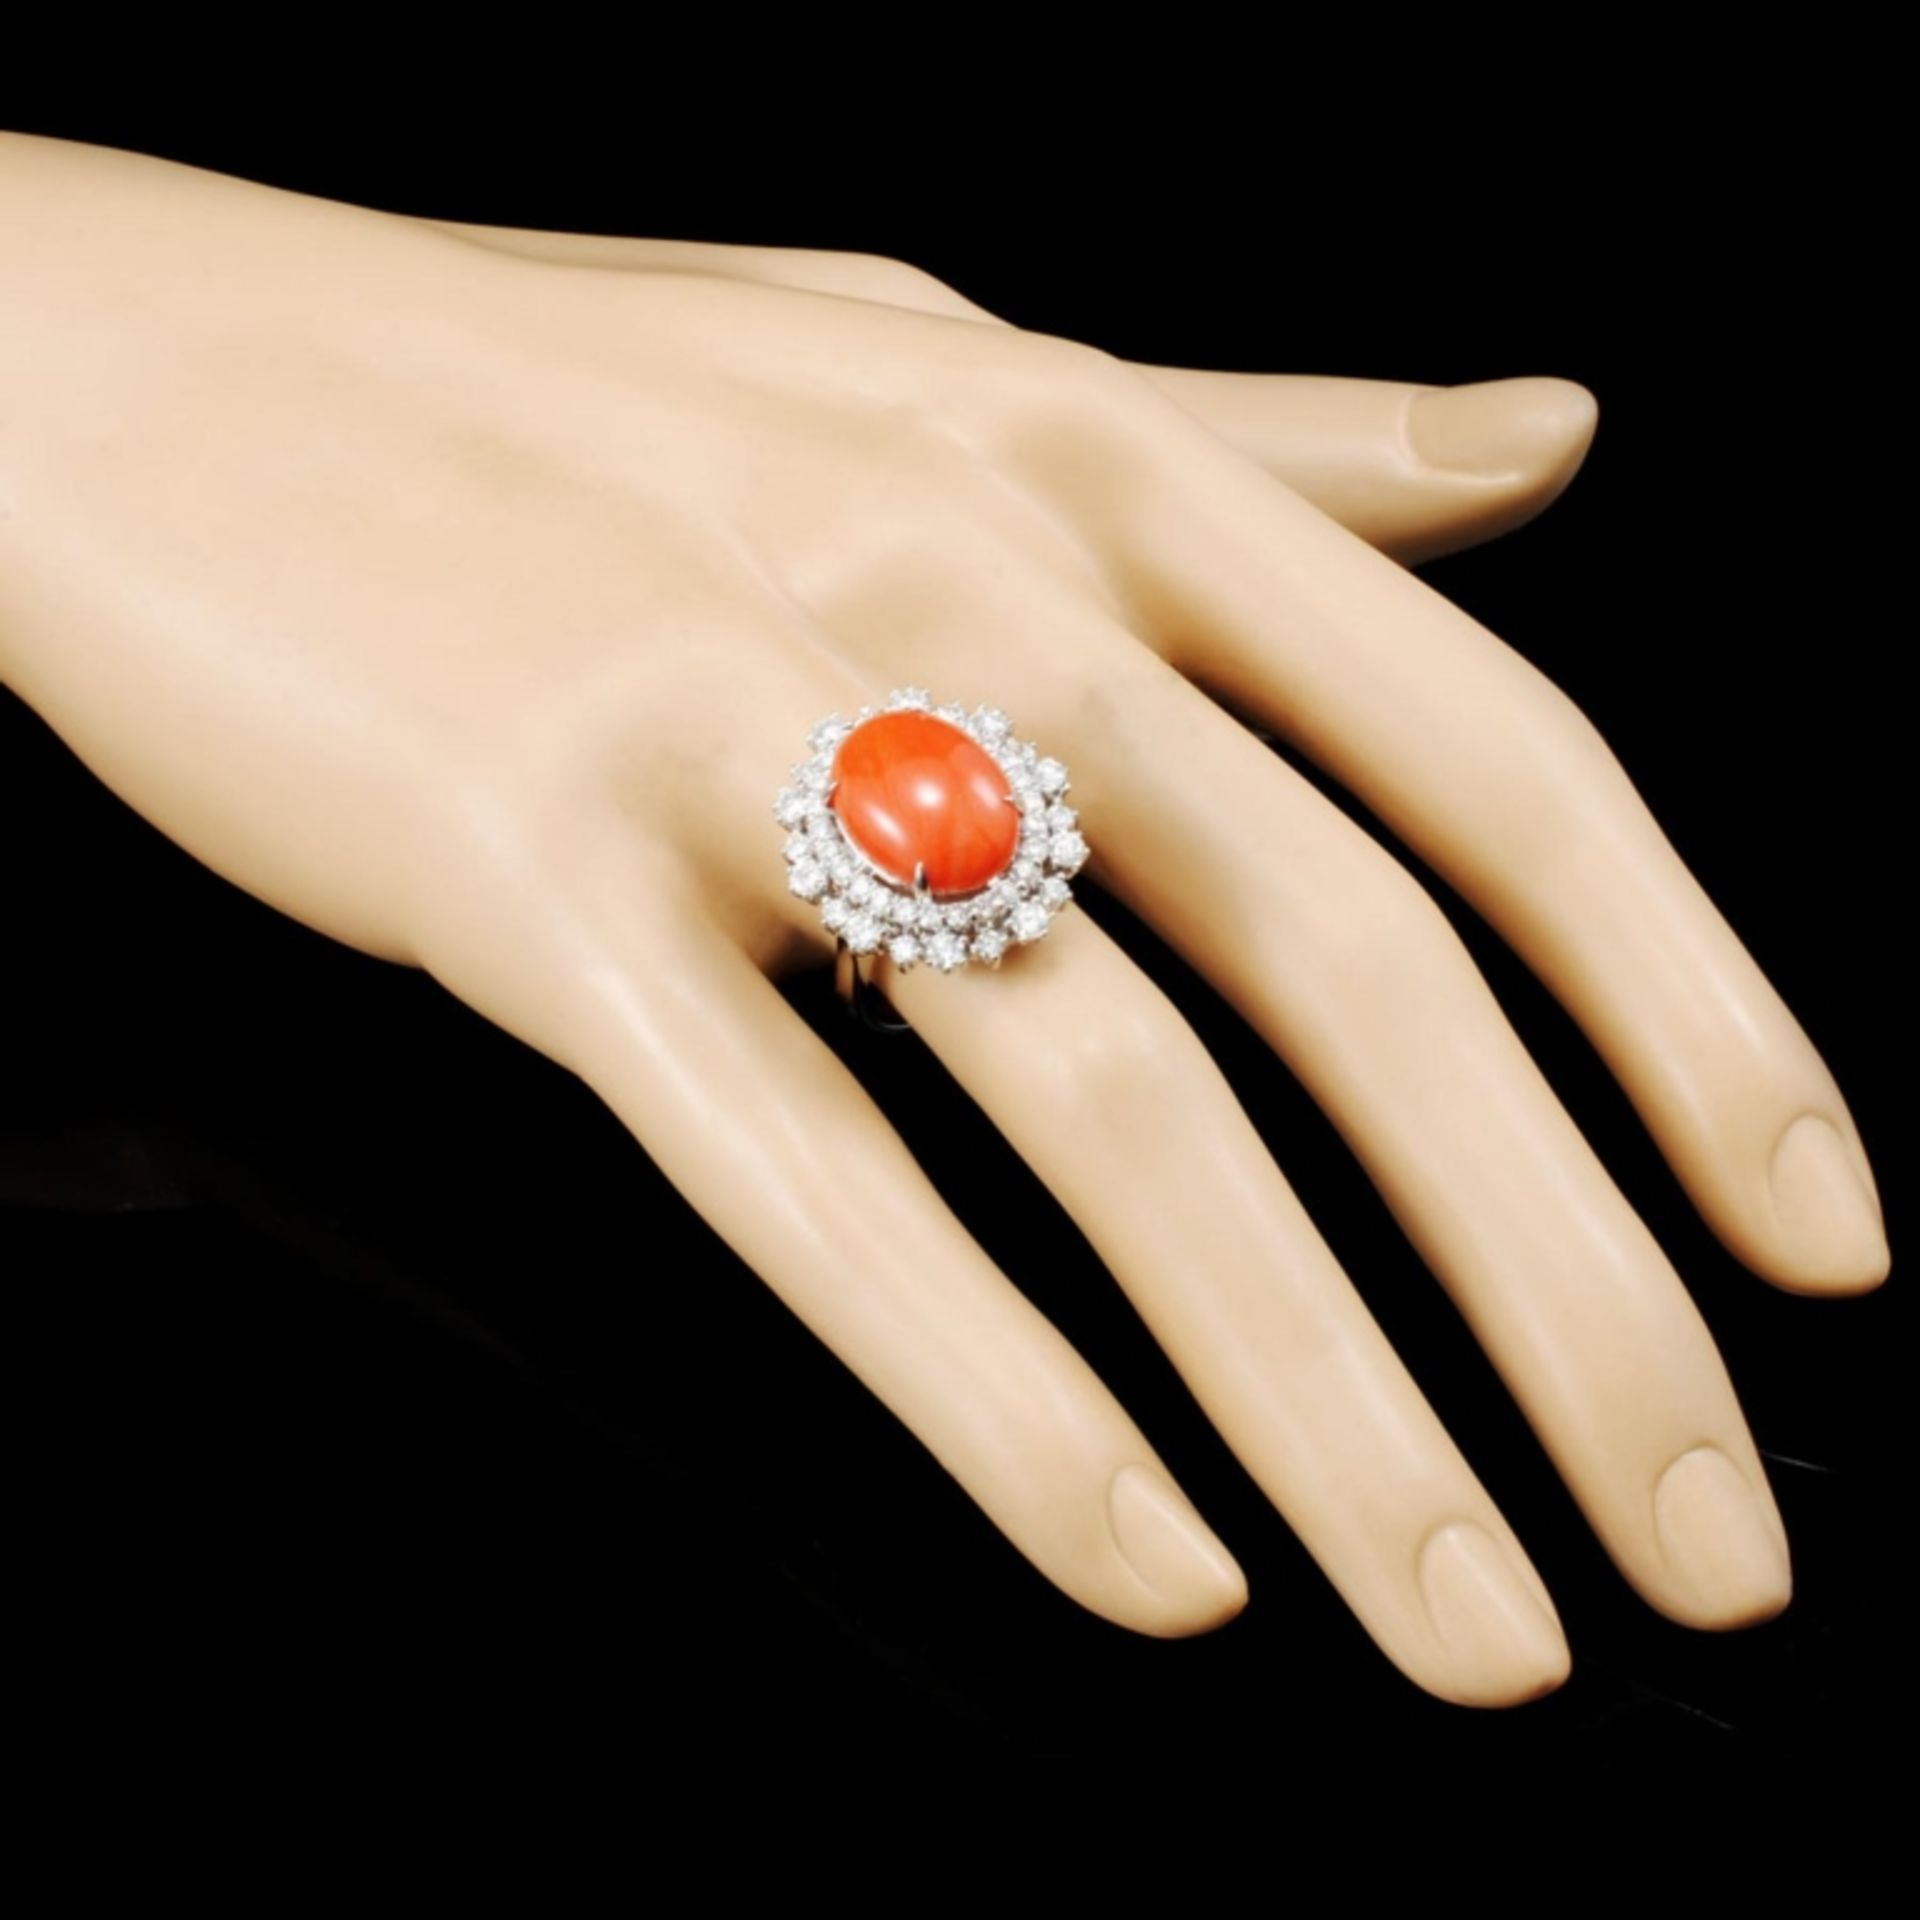 14K Gold 5.47ct Coral & 1.82ctw Diamond Ring - Image 3 of 5